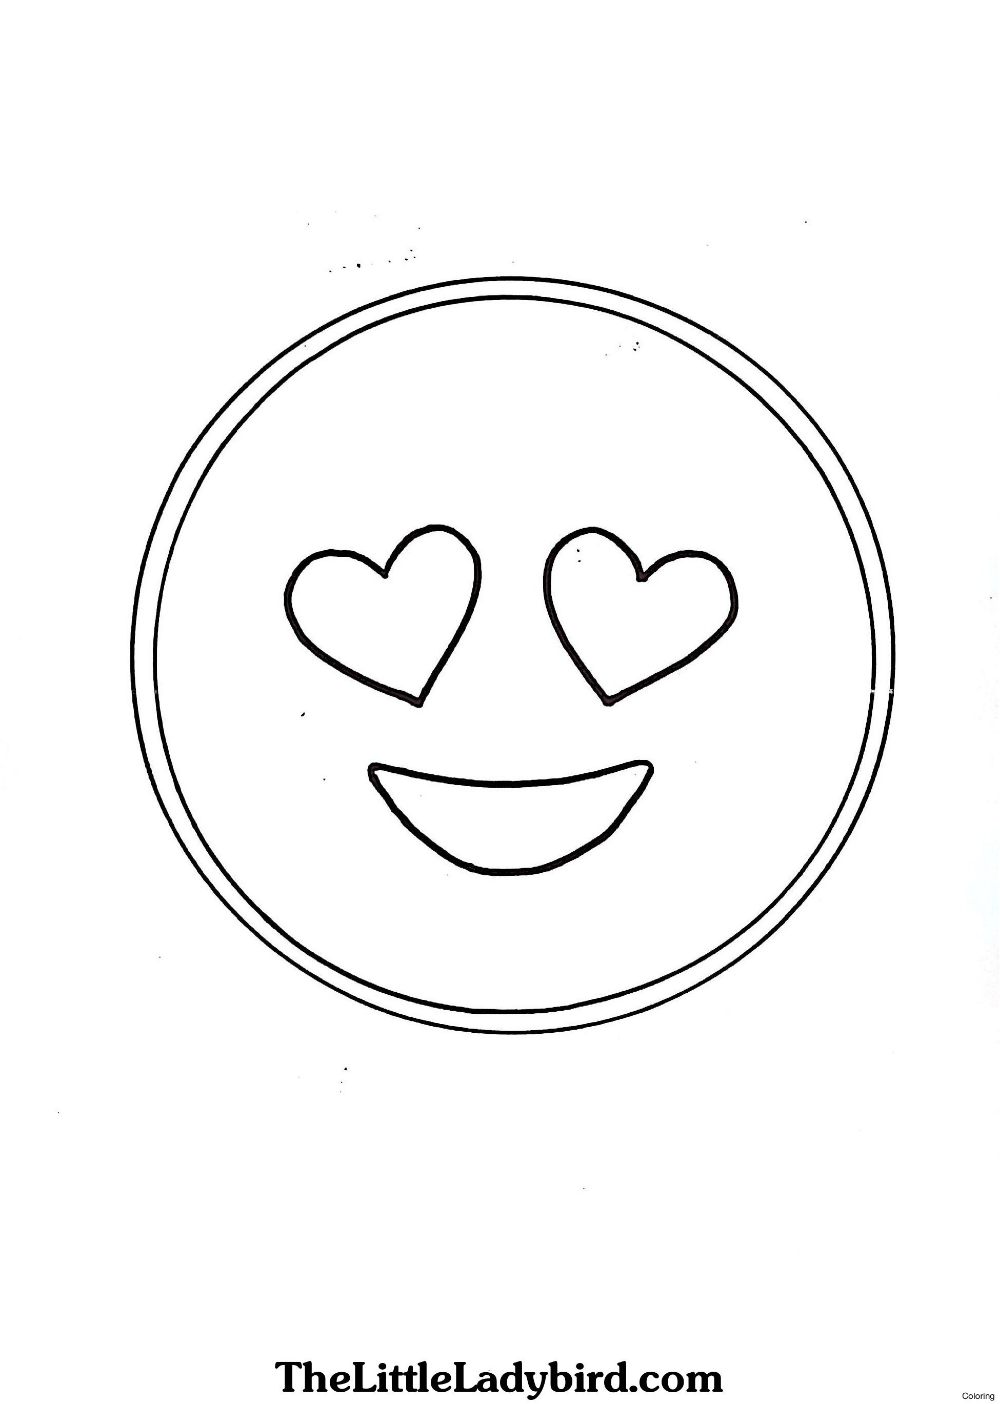 Free Emoji Coloring Pages To Print 7 S Emoji Coloring Pages Heart Coloring Pages New Year Coloring Pages